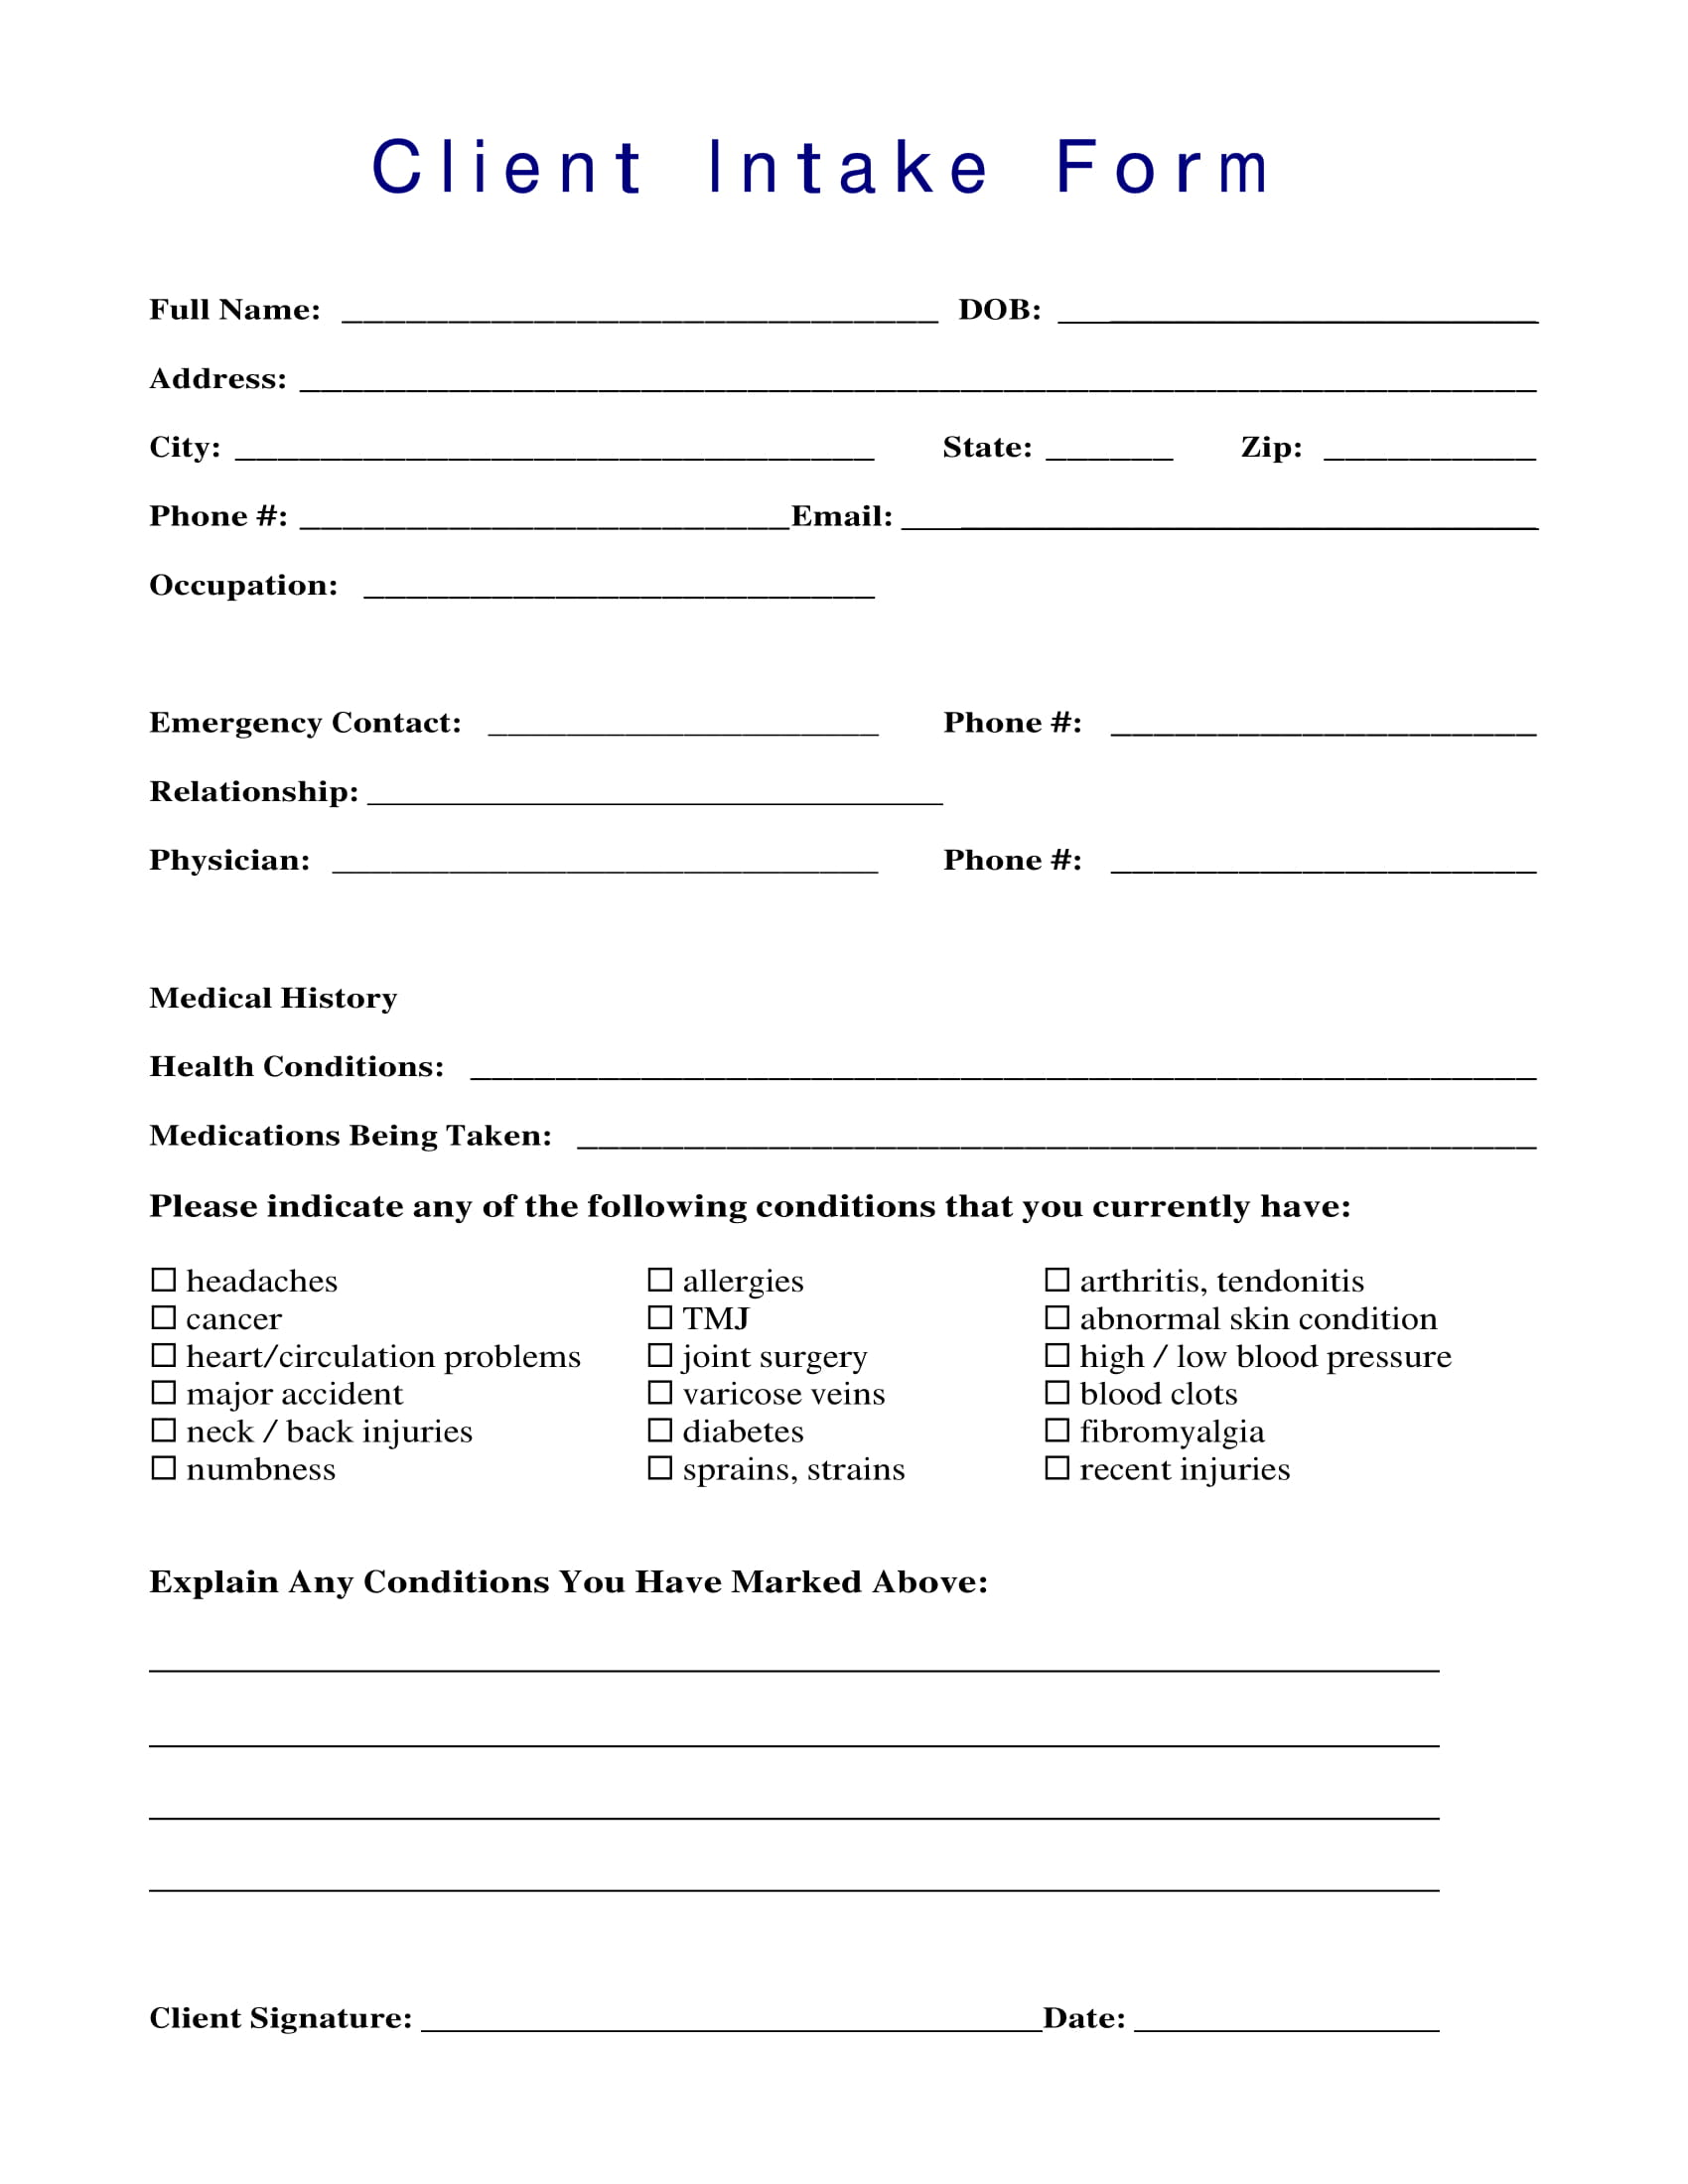 client intake form sample 1